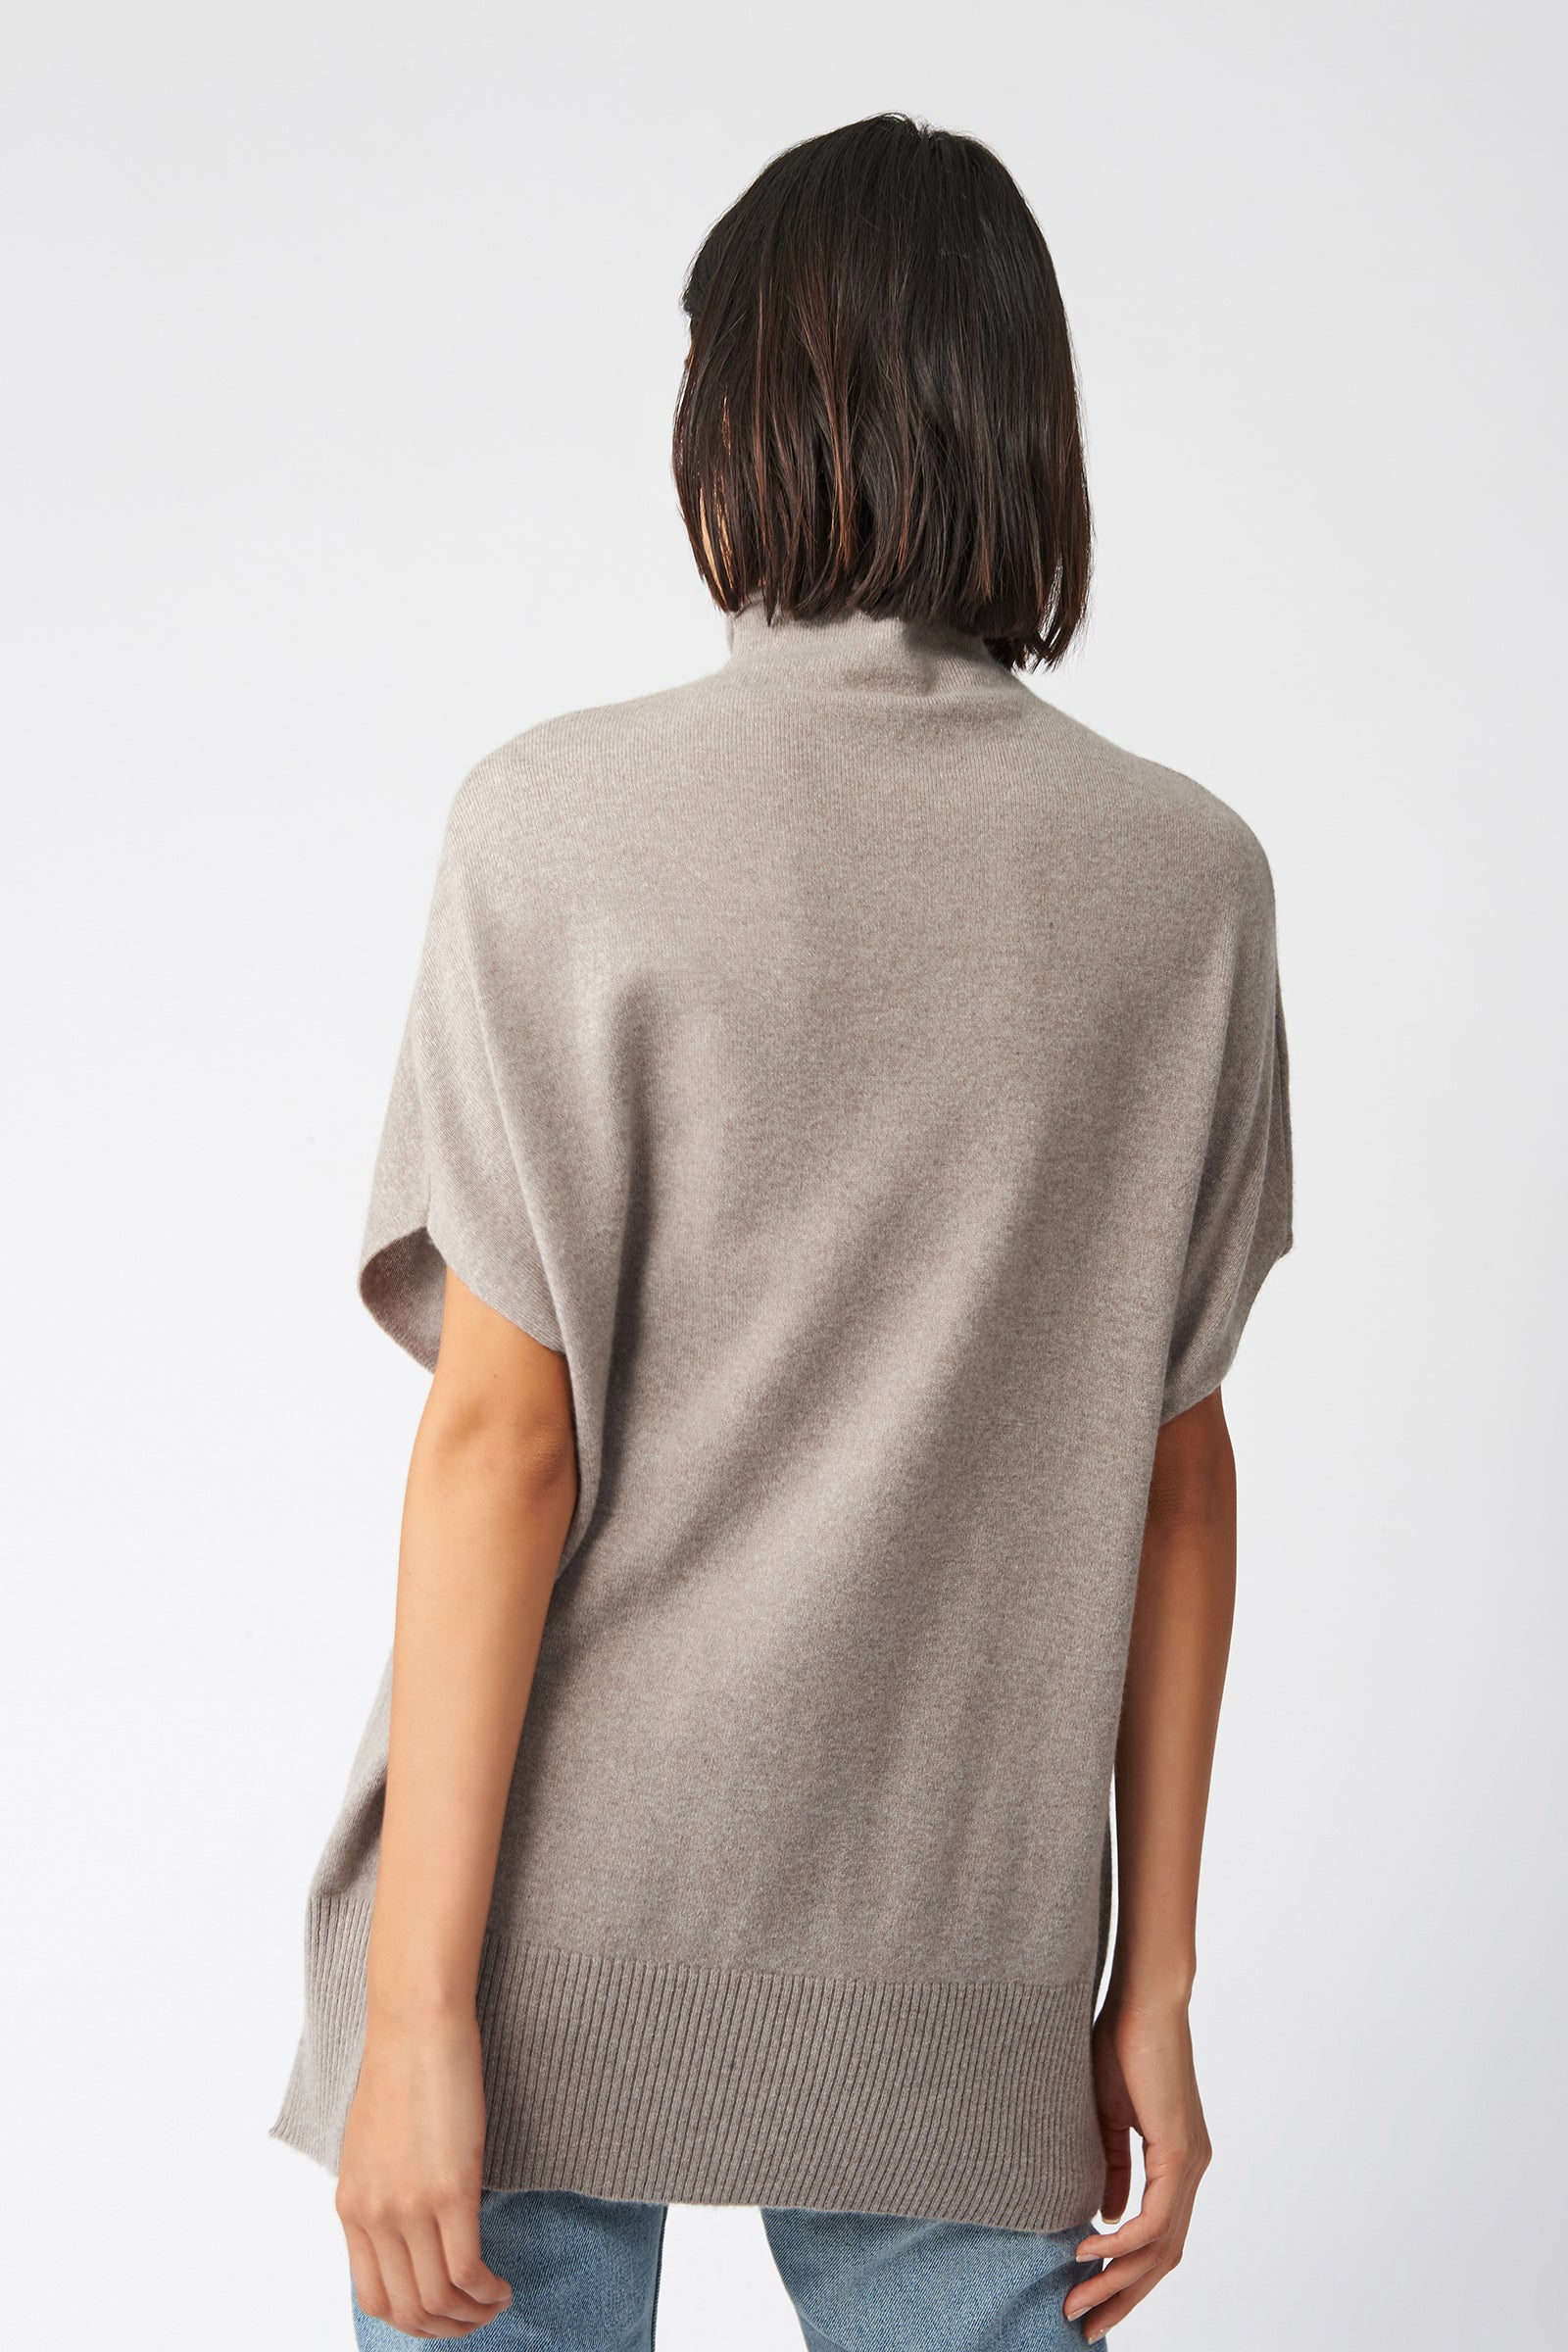 Kal Rieman Cashmere Funnelneck in Drft on Model Front View